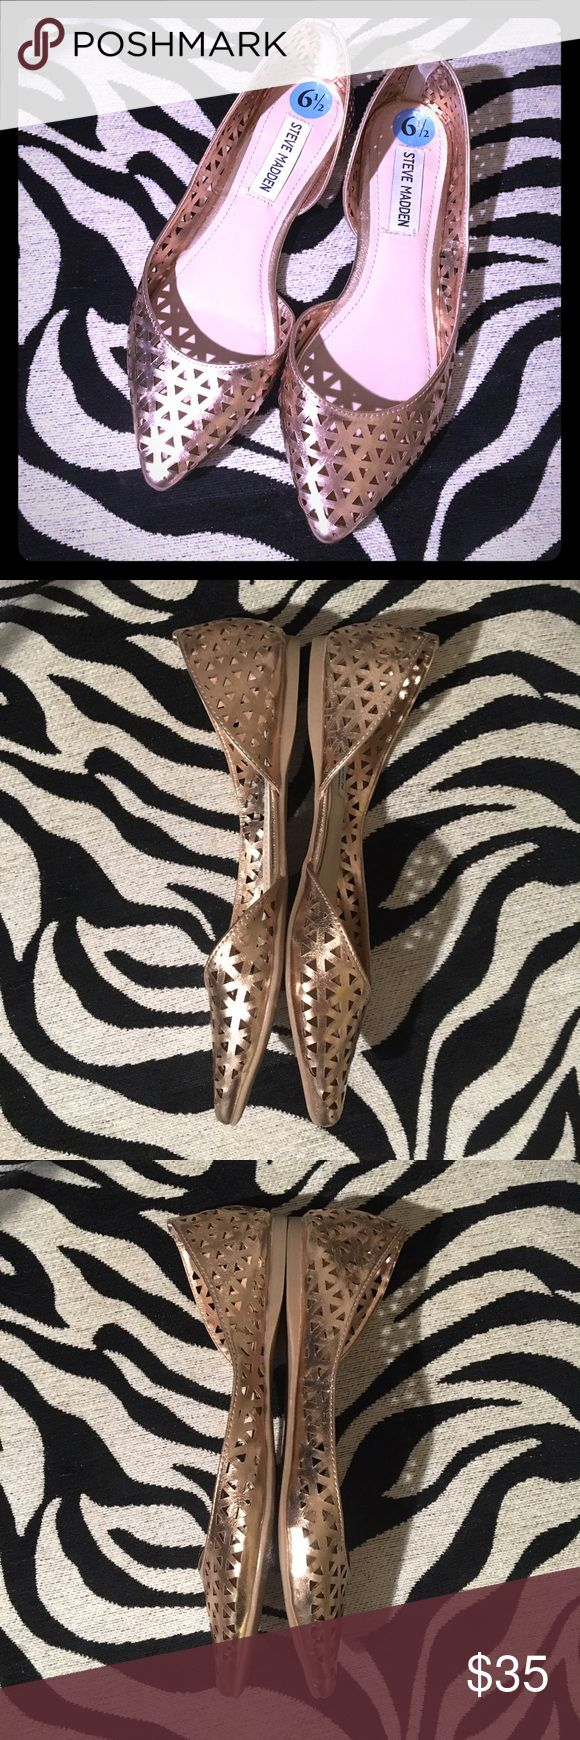 Summer Ready Gold Steve Madden Flats Gorgeous pointed toe gold tone flats from Steve Madden. Geometric triangular cutout pattern is so cute and perfect for spring and summer! In like new condition!  Only worn once. Steve Madden Shoes Flats & Loafers